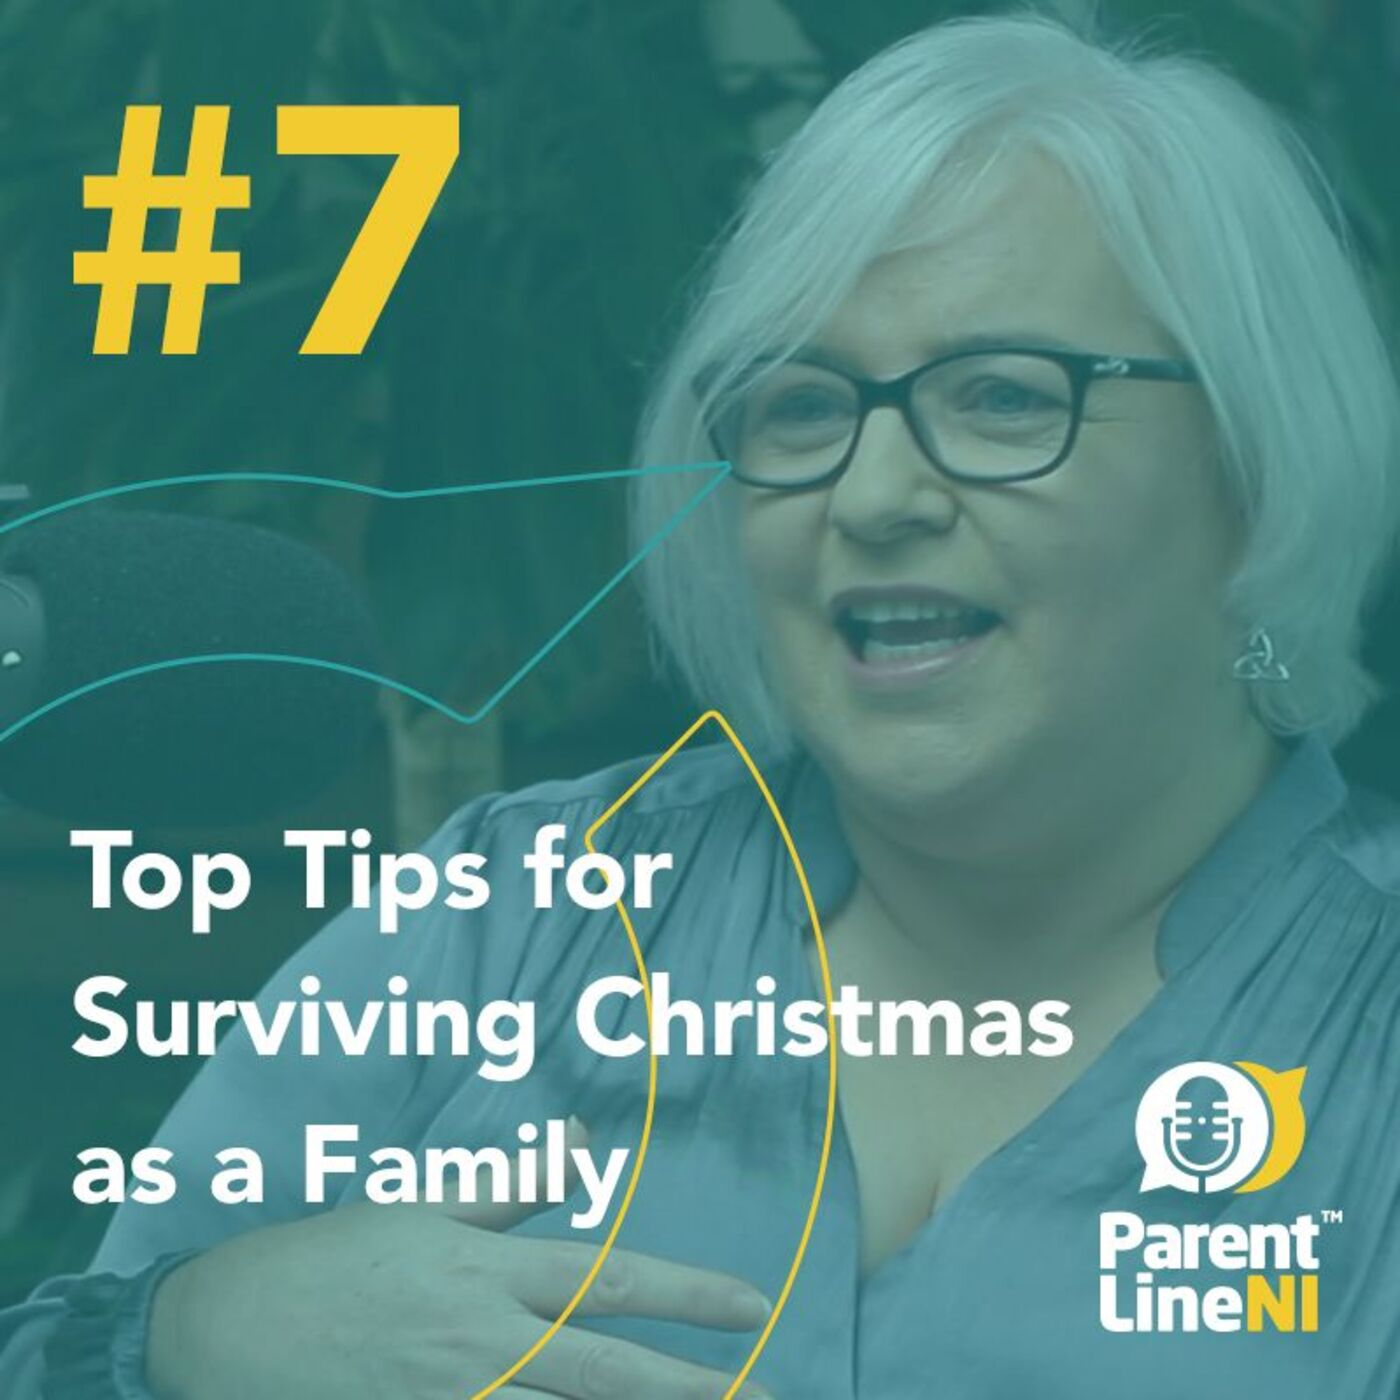 #7 - Top Tips for Surviving Christmas as a Family